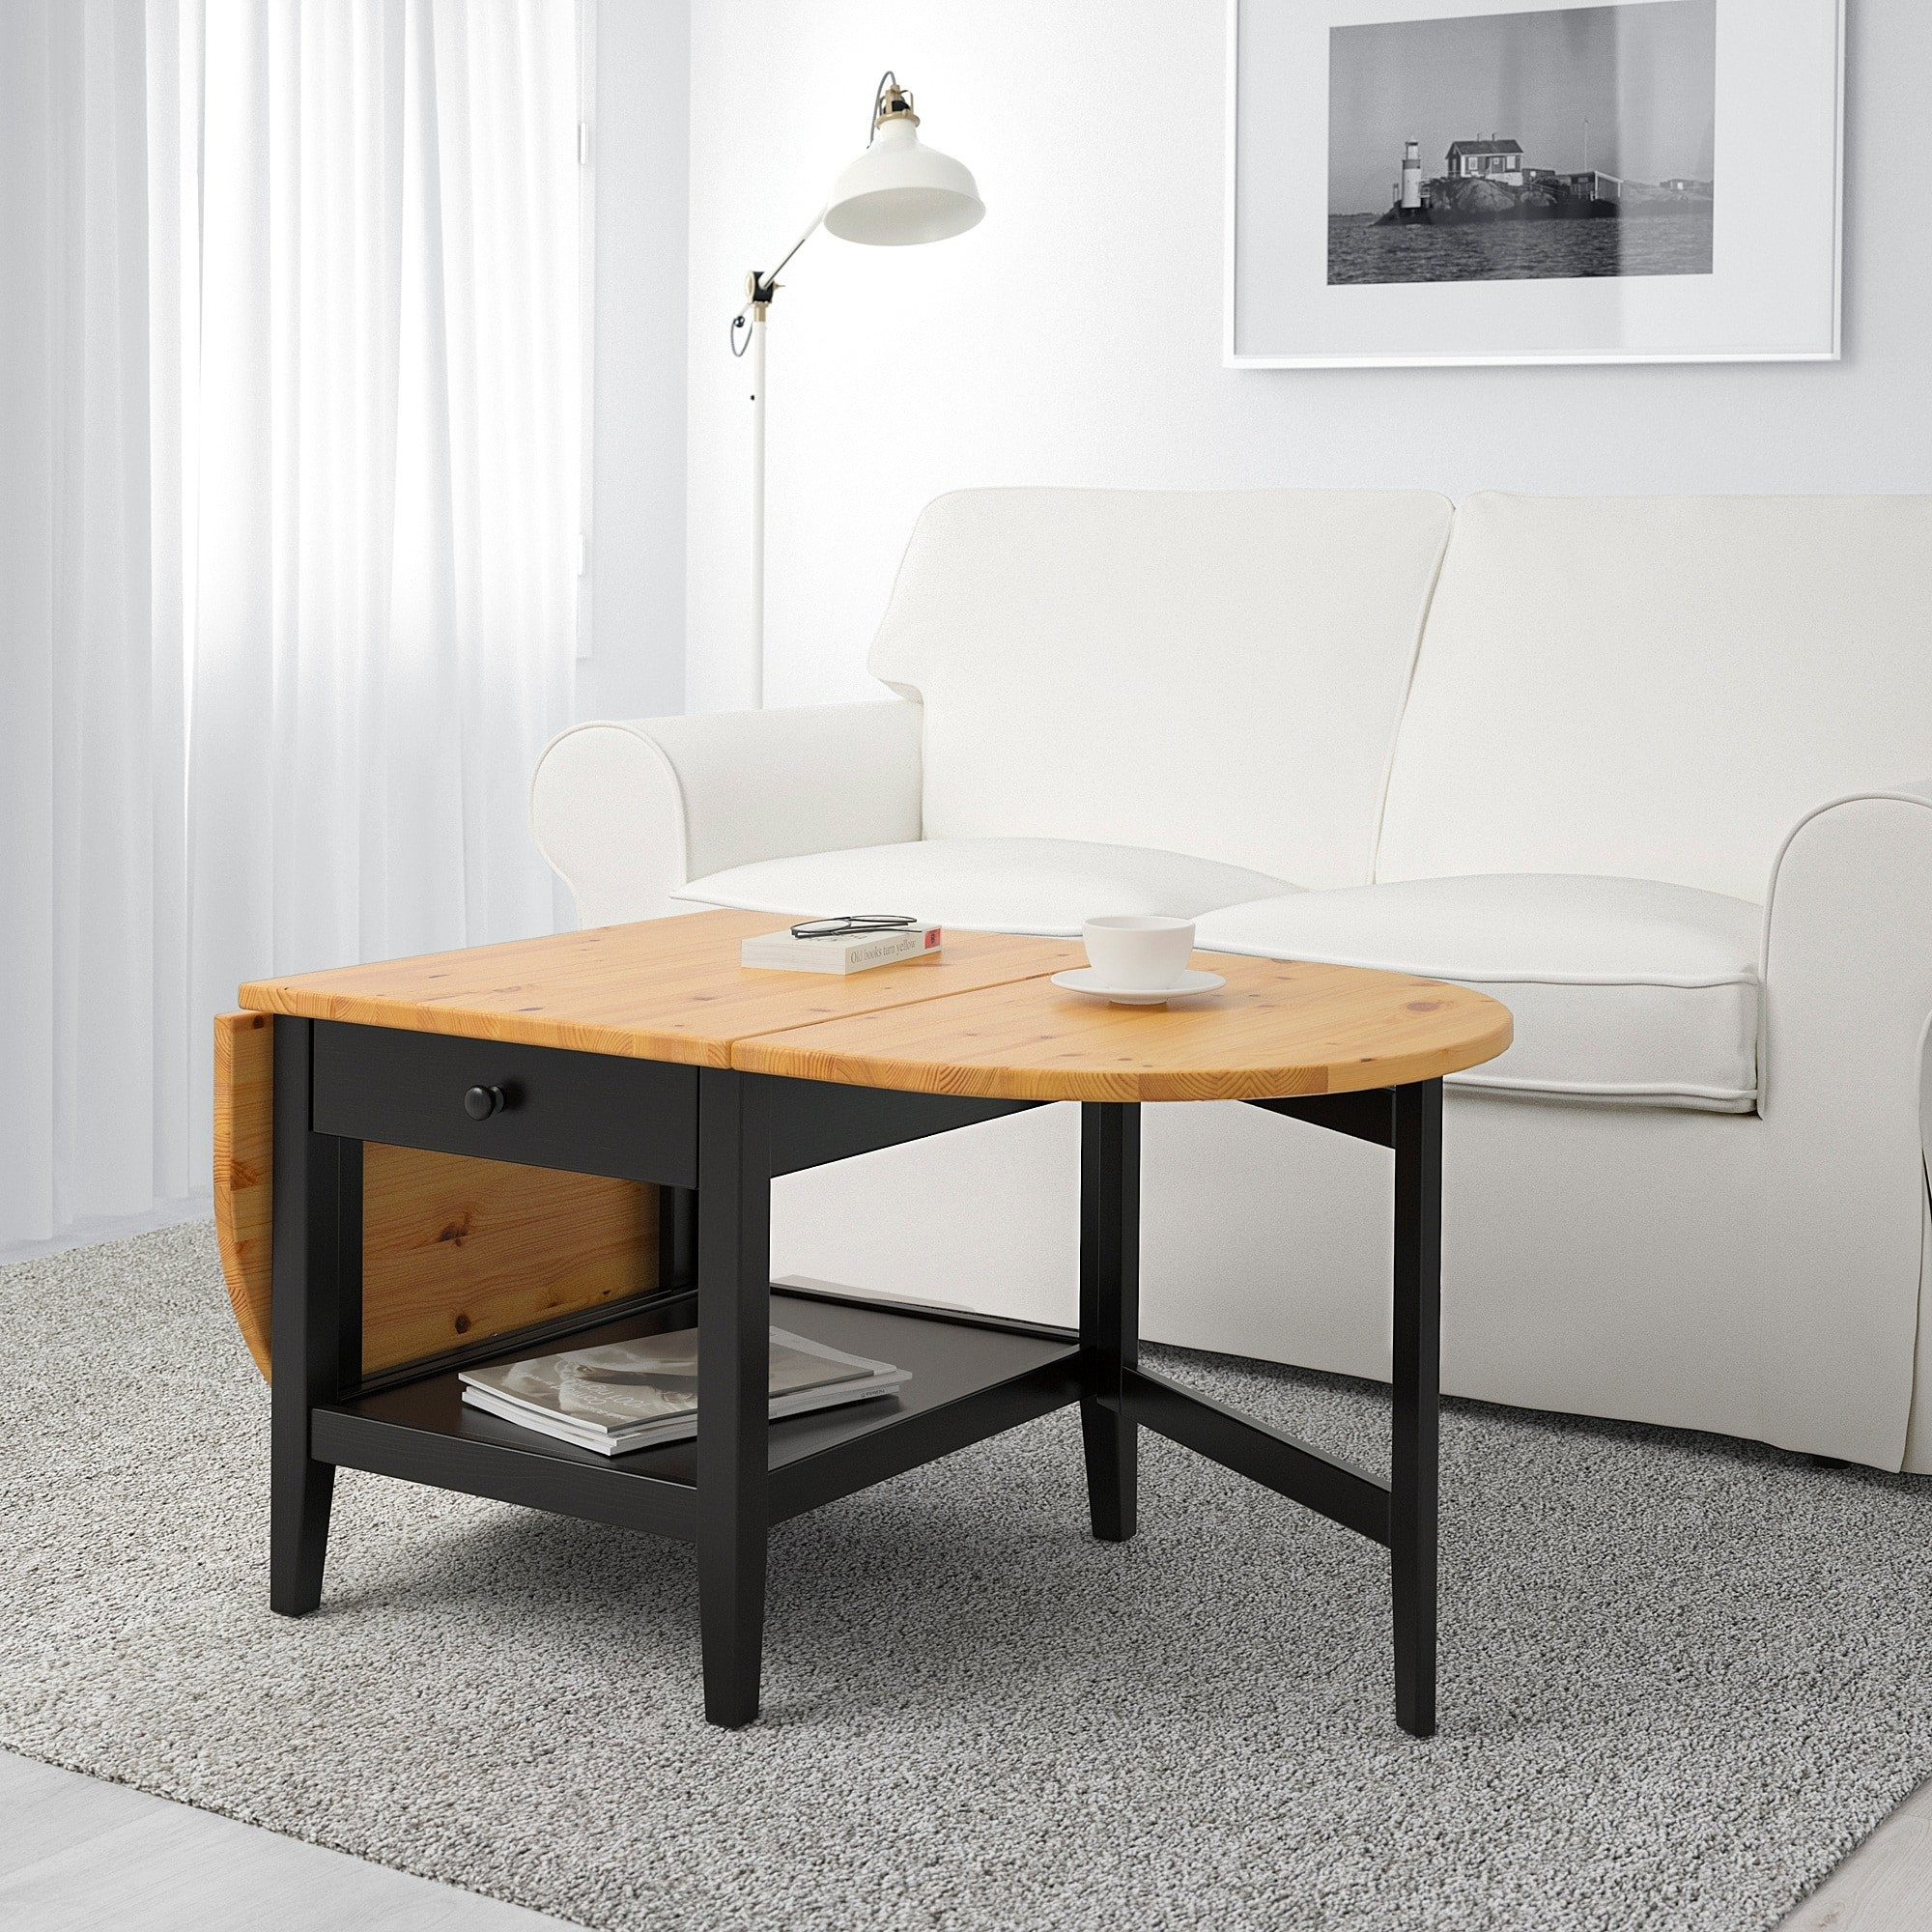 A oval-esque coffee table with one end folded in, leaving that side flat-edged, with a drawer and shelf beneath it. With both ends in, the table would be square